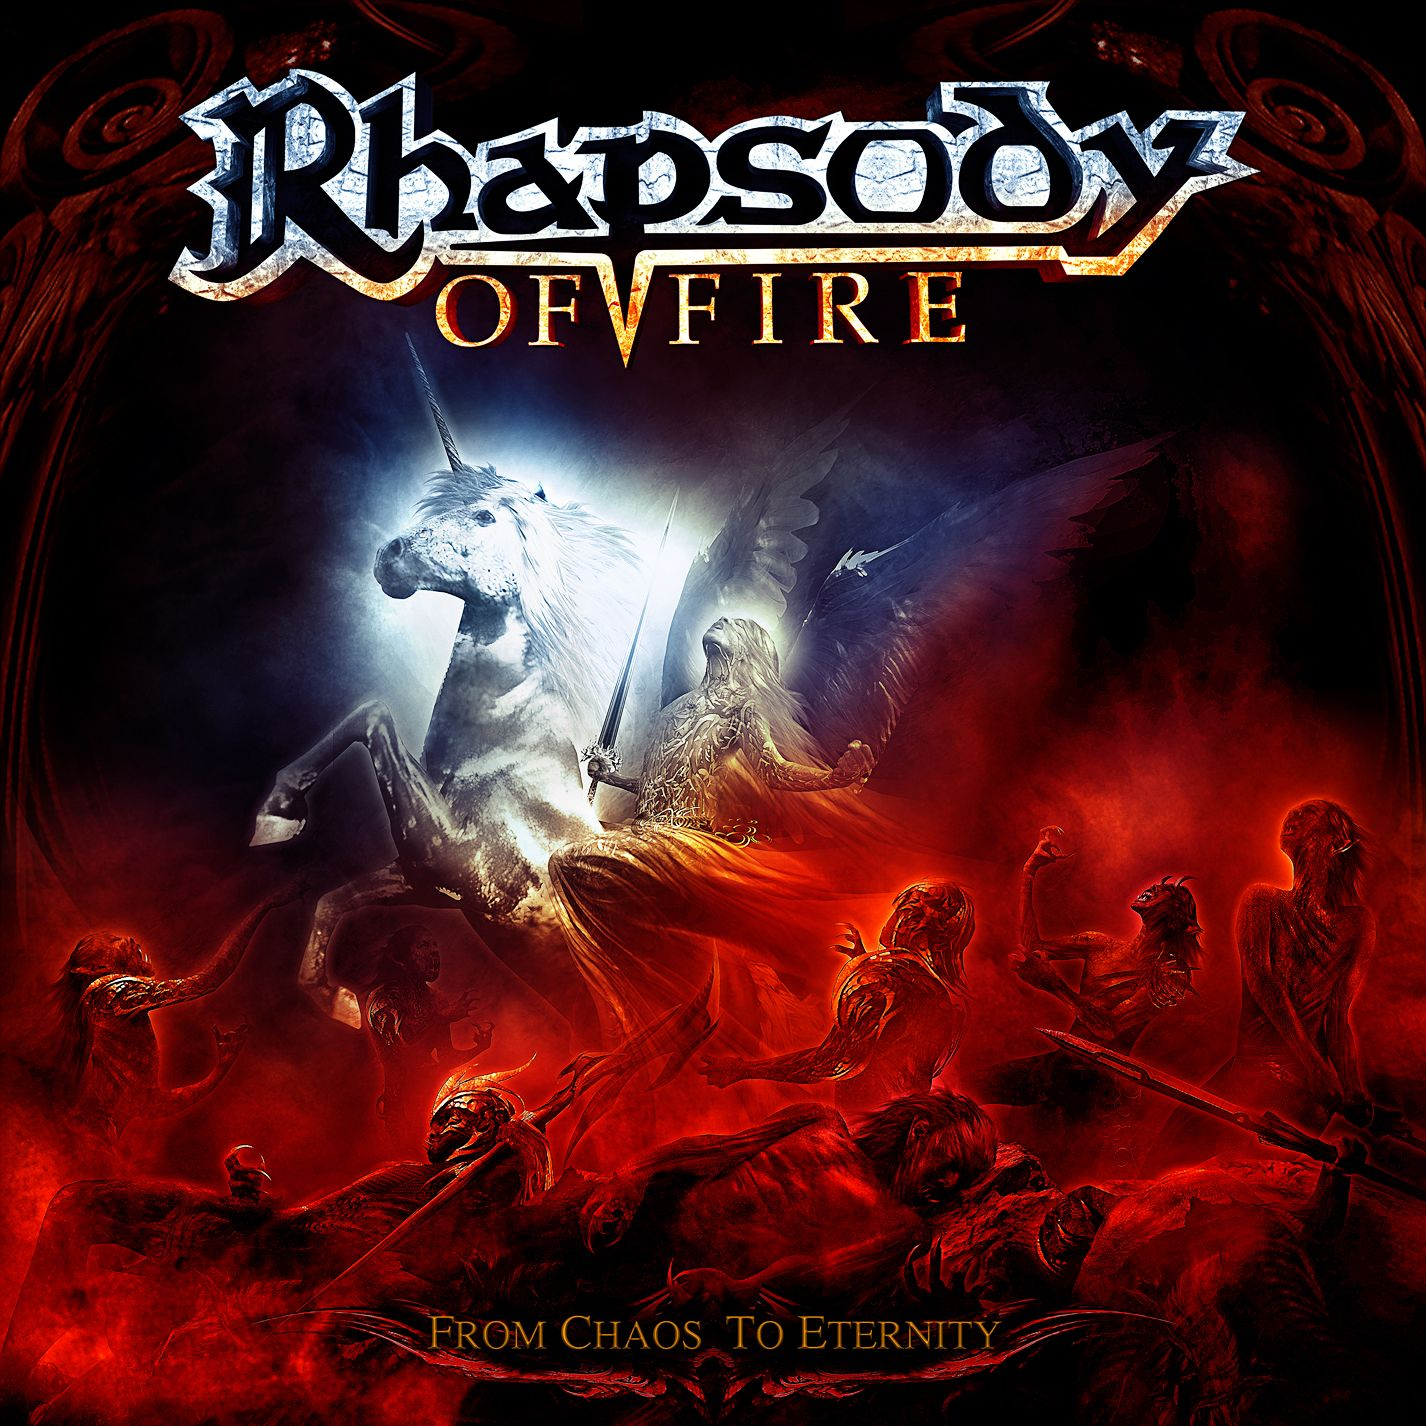 Rhapsody Of Fire - From Chaos To Eternity album cover